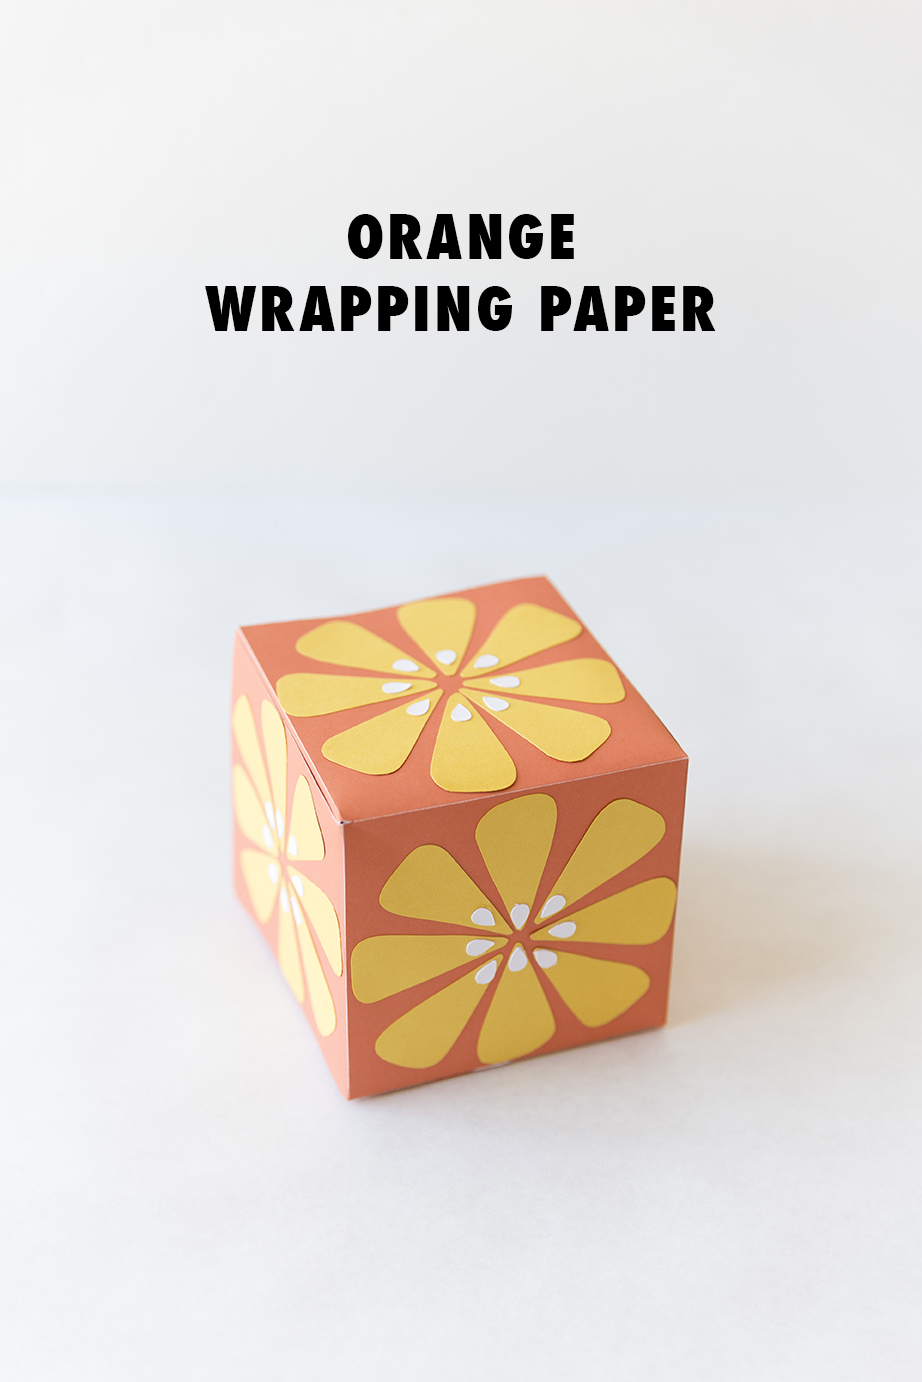 Turn your wrapping paper into an orange!